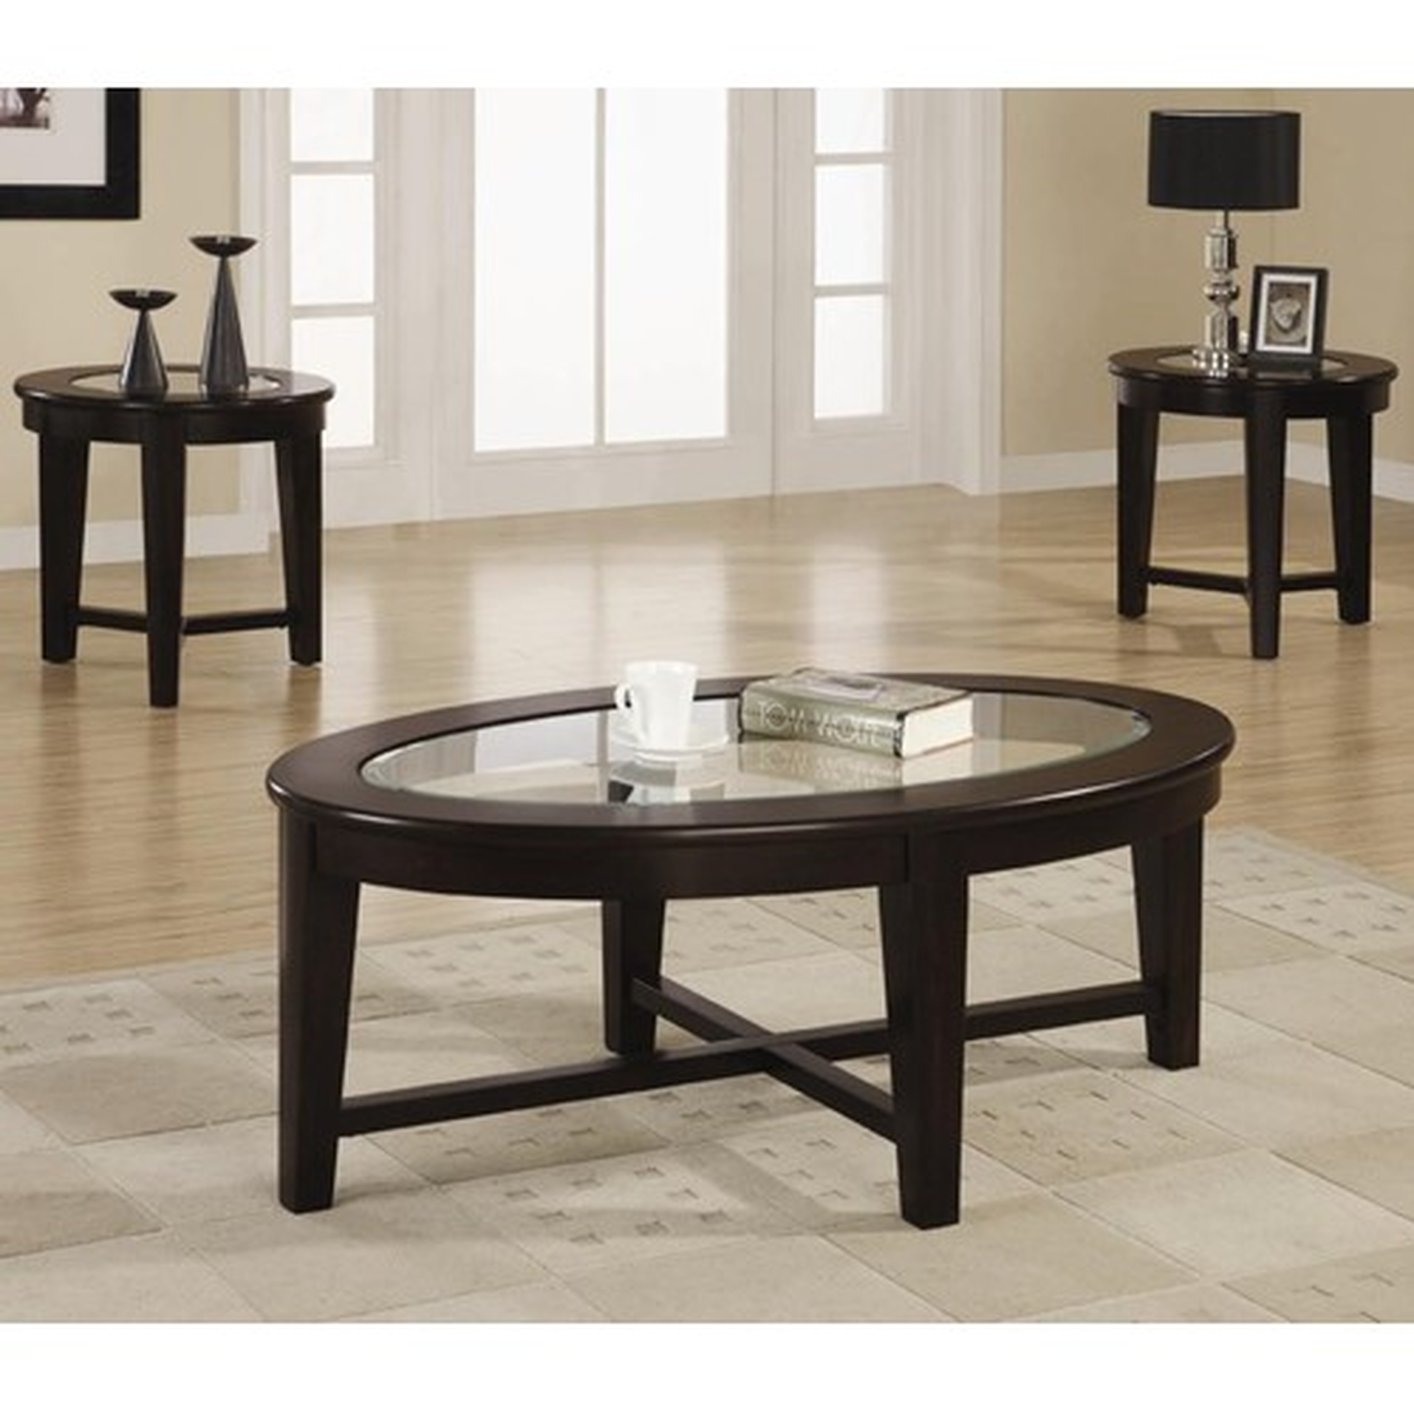 brown wood coffee table set steal sofa furniture los alexis glass end tables angeles outdoor folding top bedroom nesting vancouver large sets steel pipe side custom dog kennel